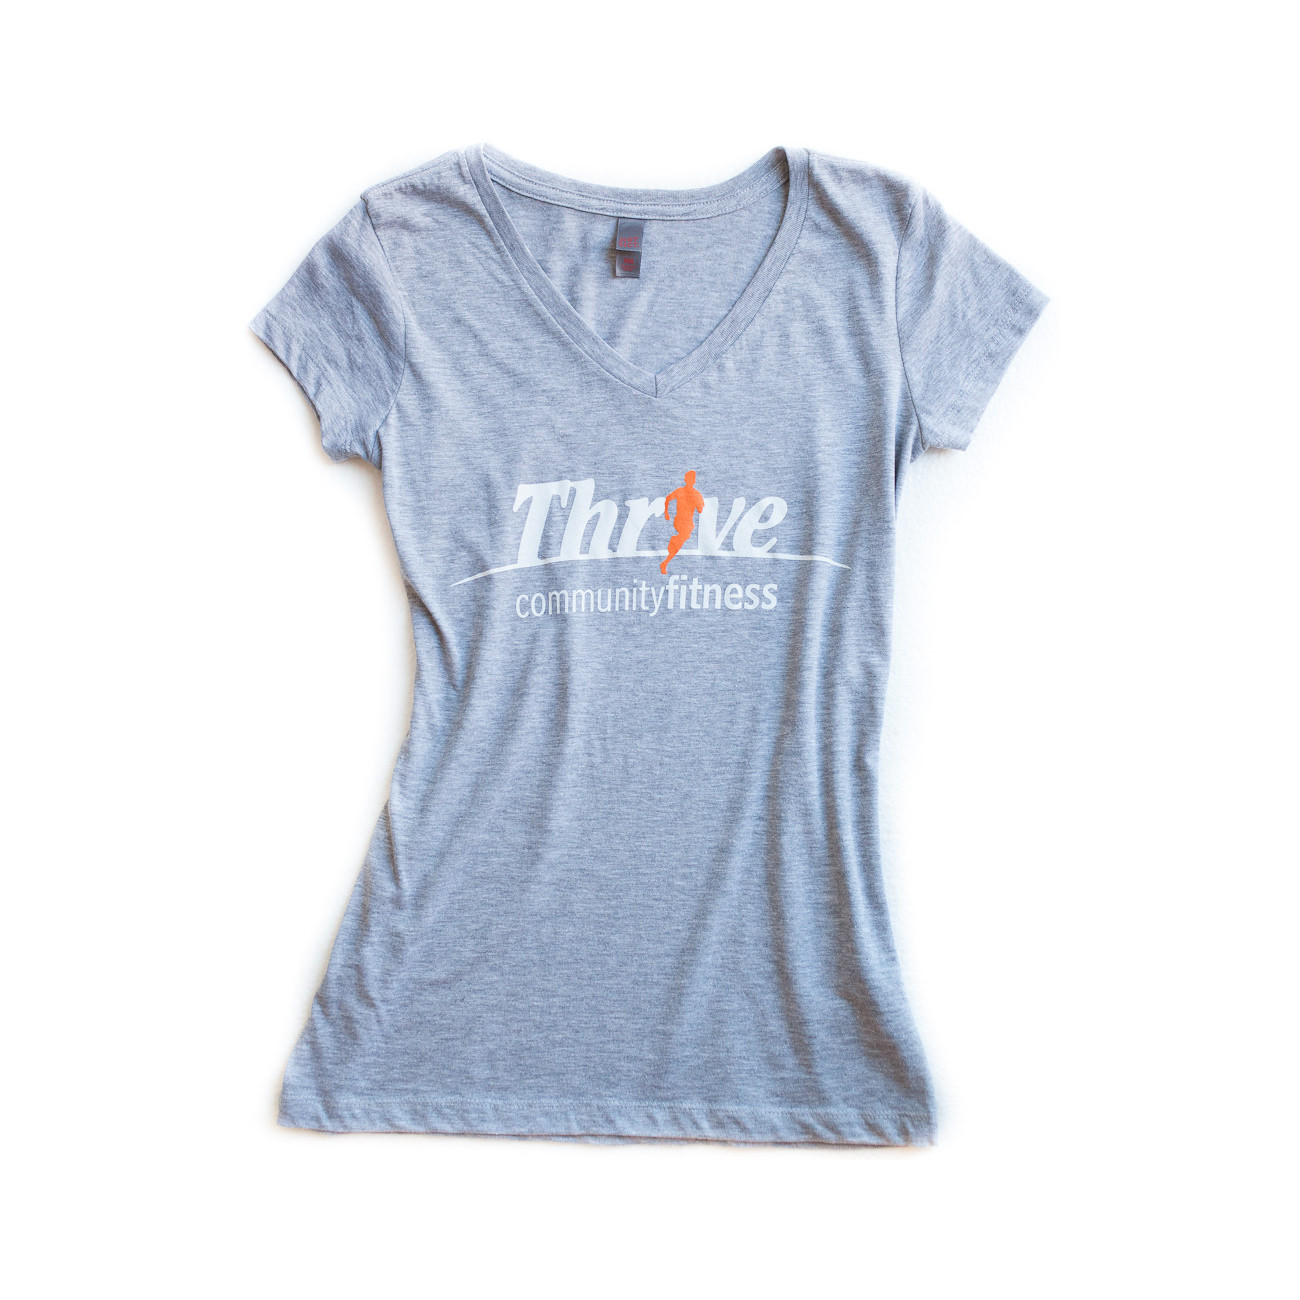 Women's Vneck T-shirt